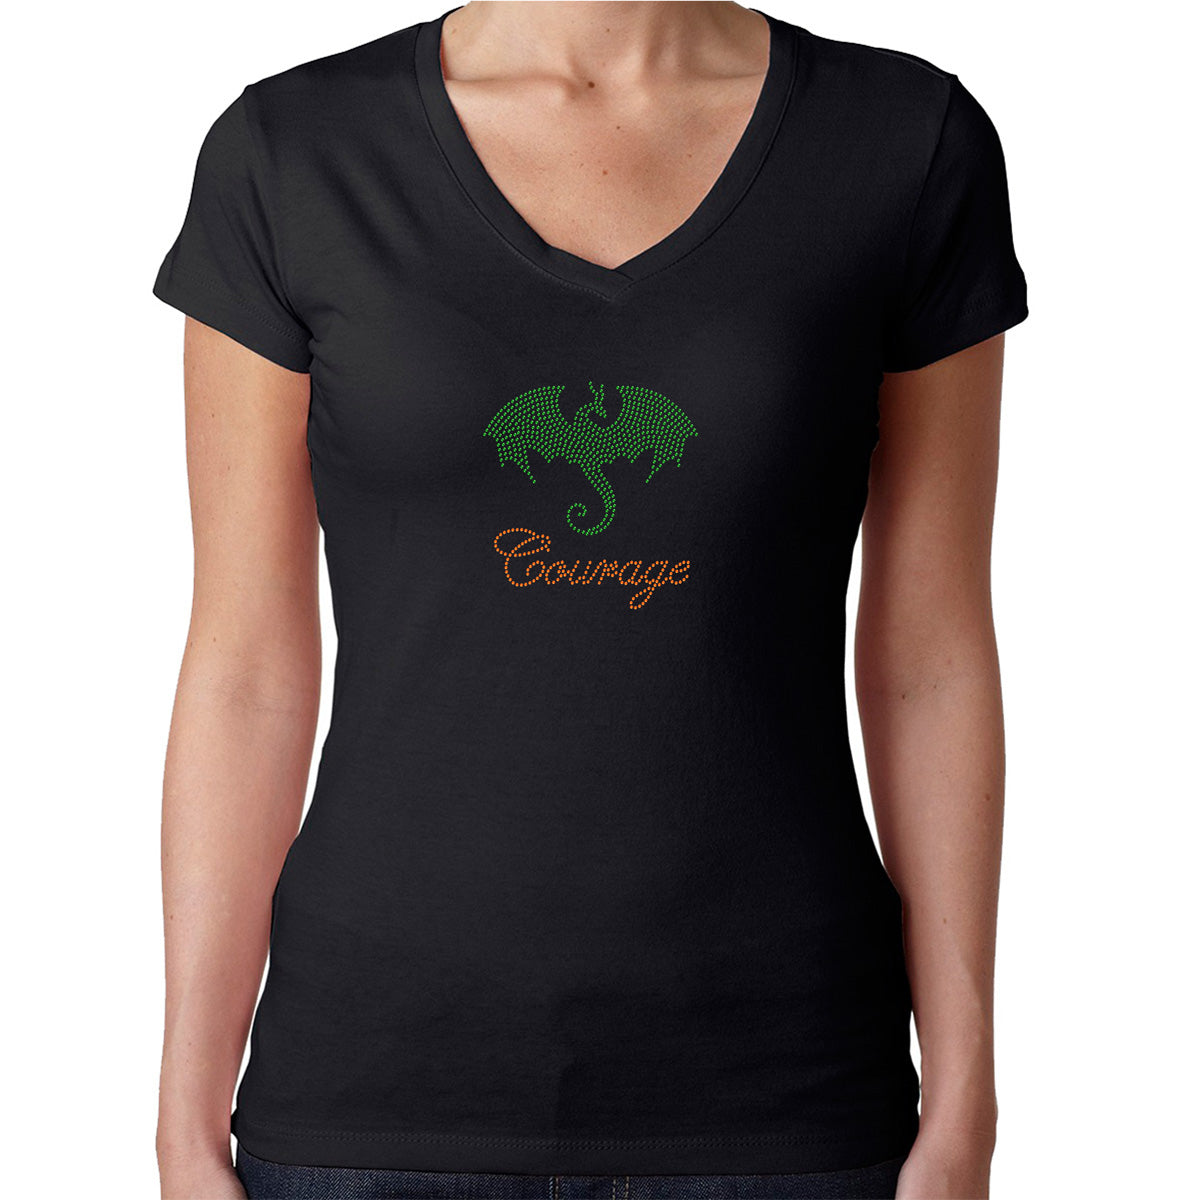 Womens T-Shirt Rhinestone Bling Black Fitted Tee Courage Dragon